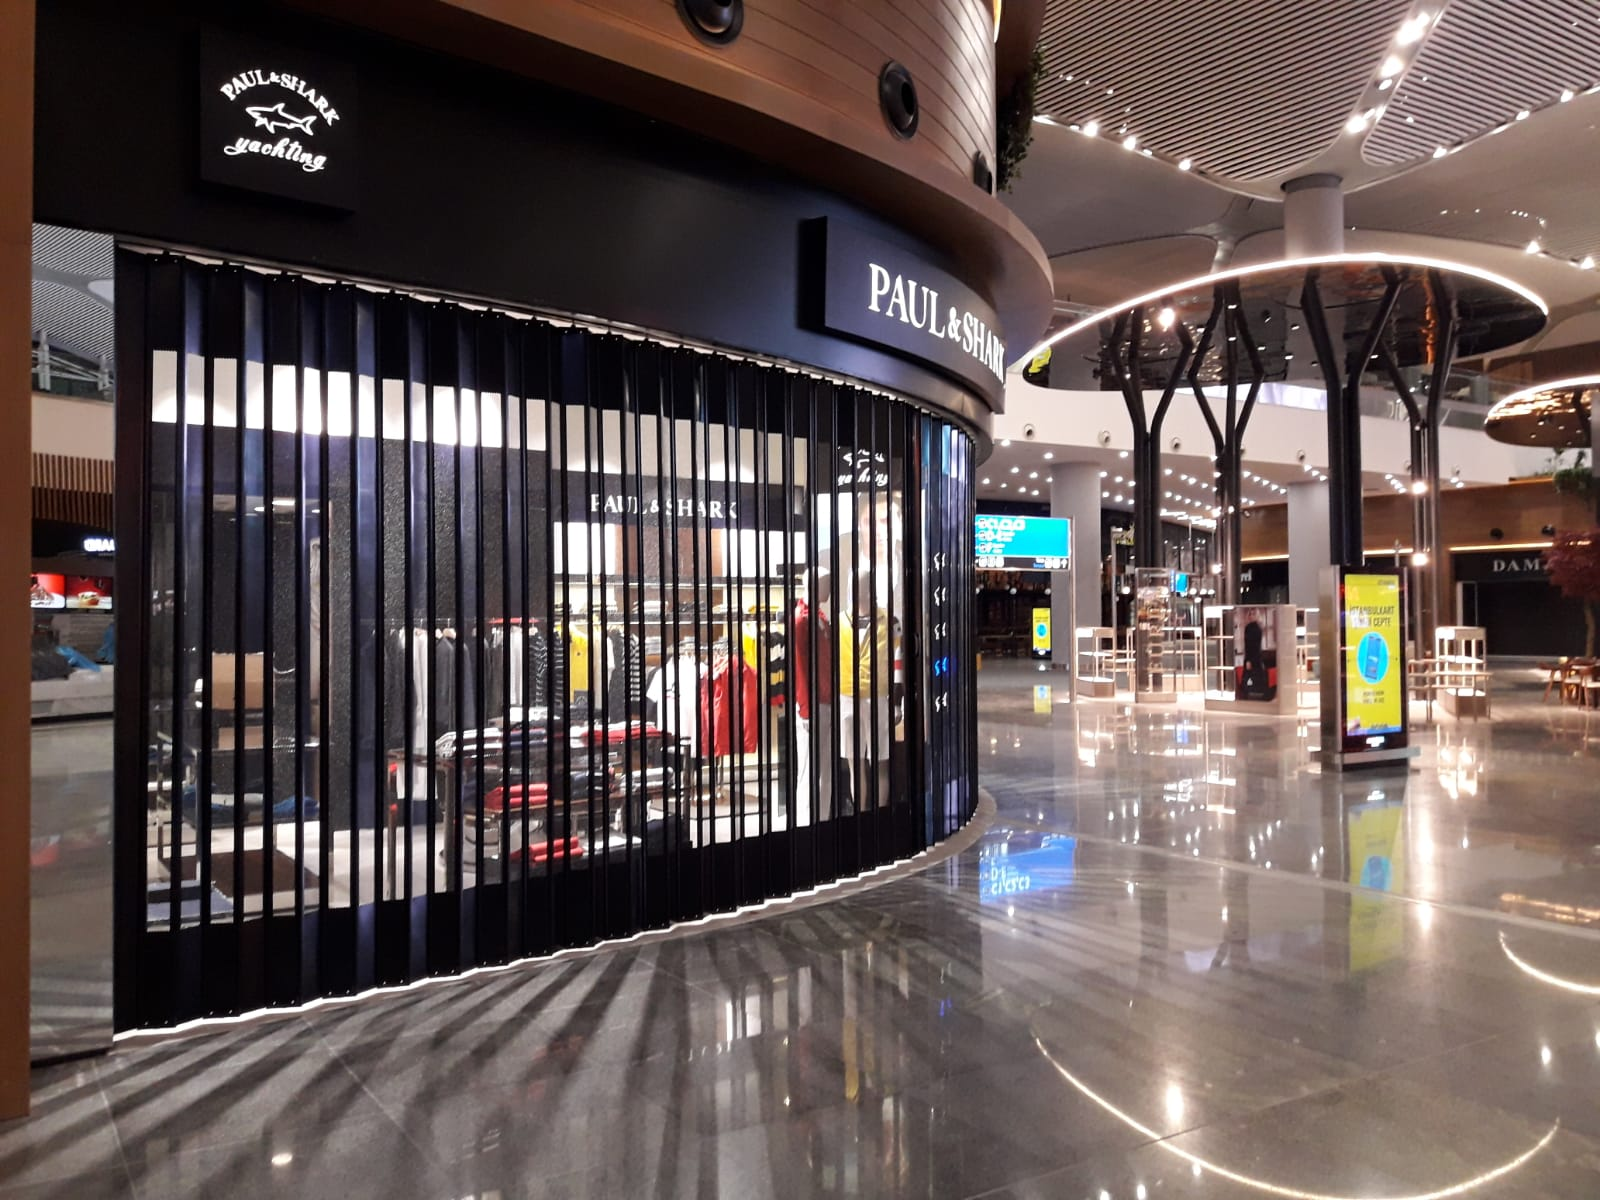 PAUL SHARK 3. AIRPORT DUTY FREE AREA – SLIDING FOLDING SHUTTER SYSTEM